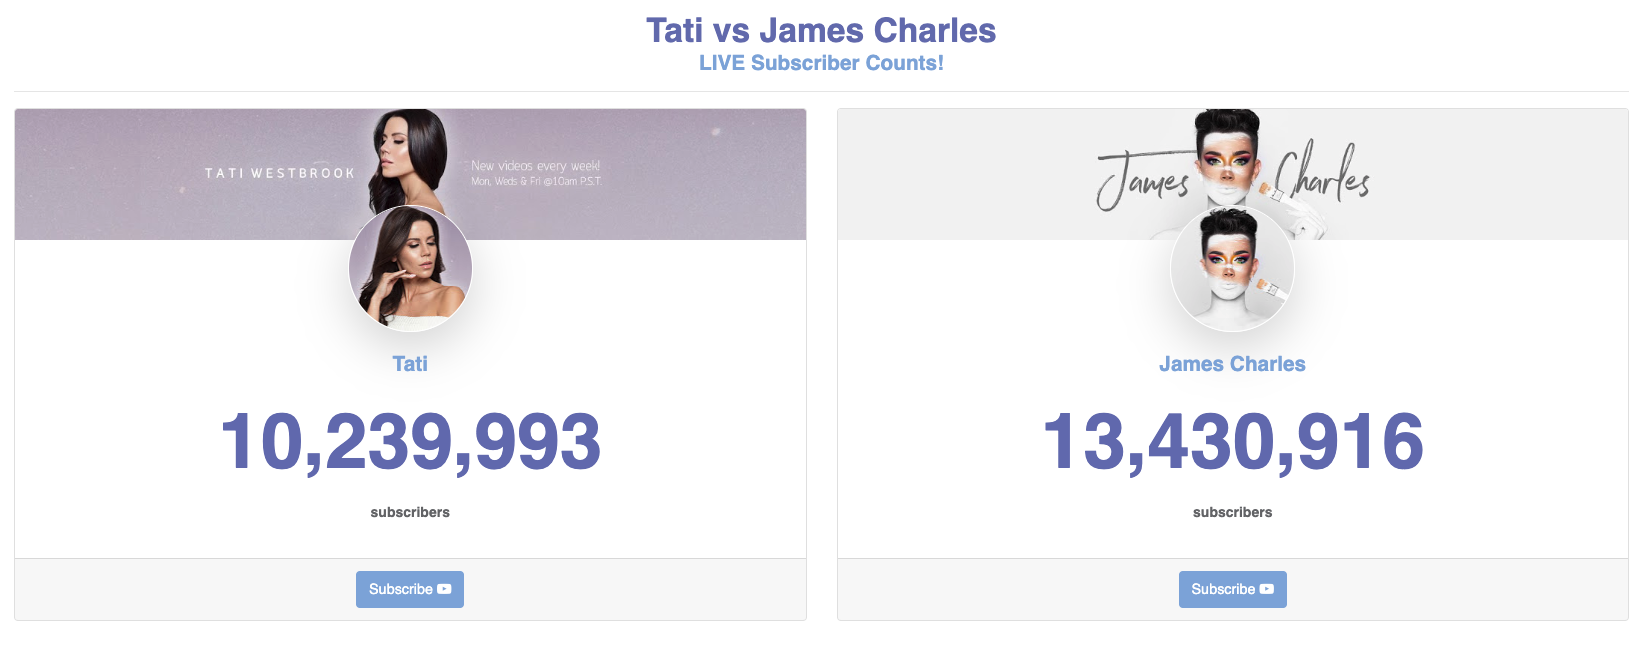 youtube subscriber count james charles